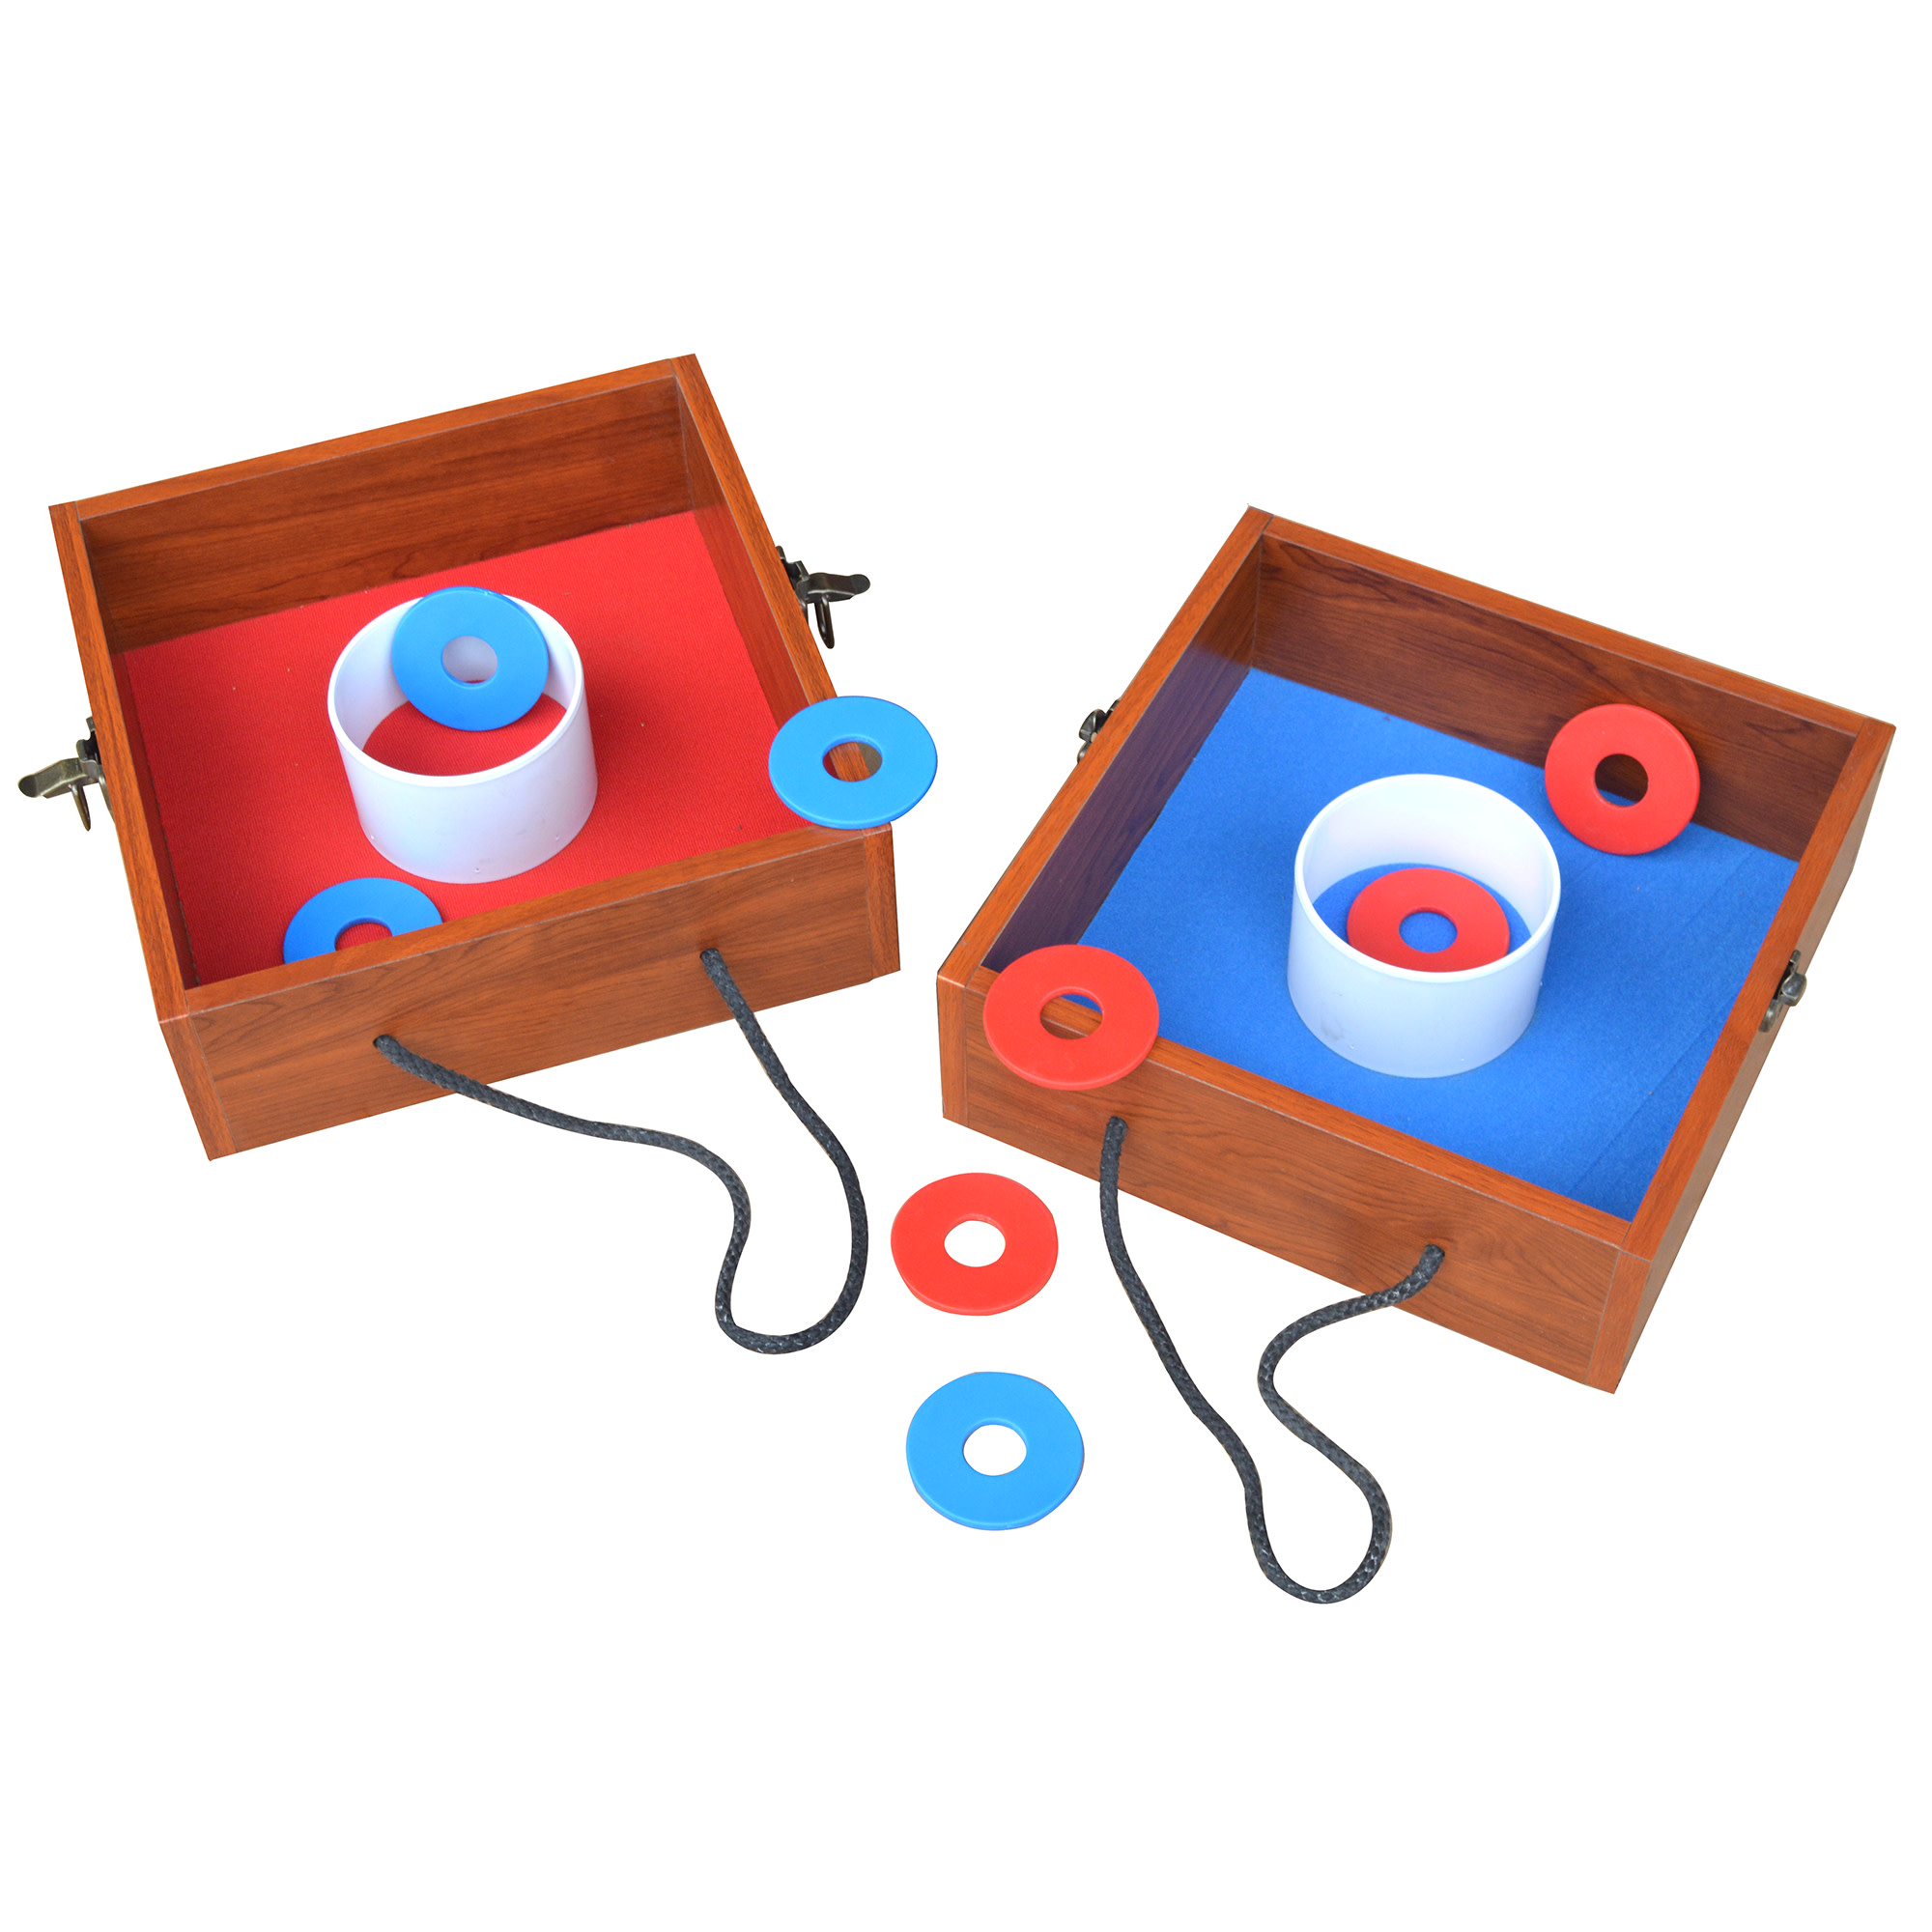 Hathaway Washer Toss Game Set w/Goal Boxes & 8 Washers - Red & Blue